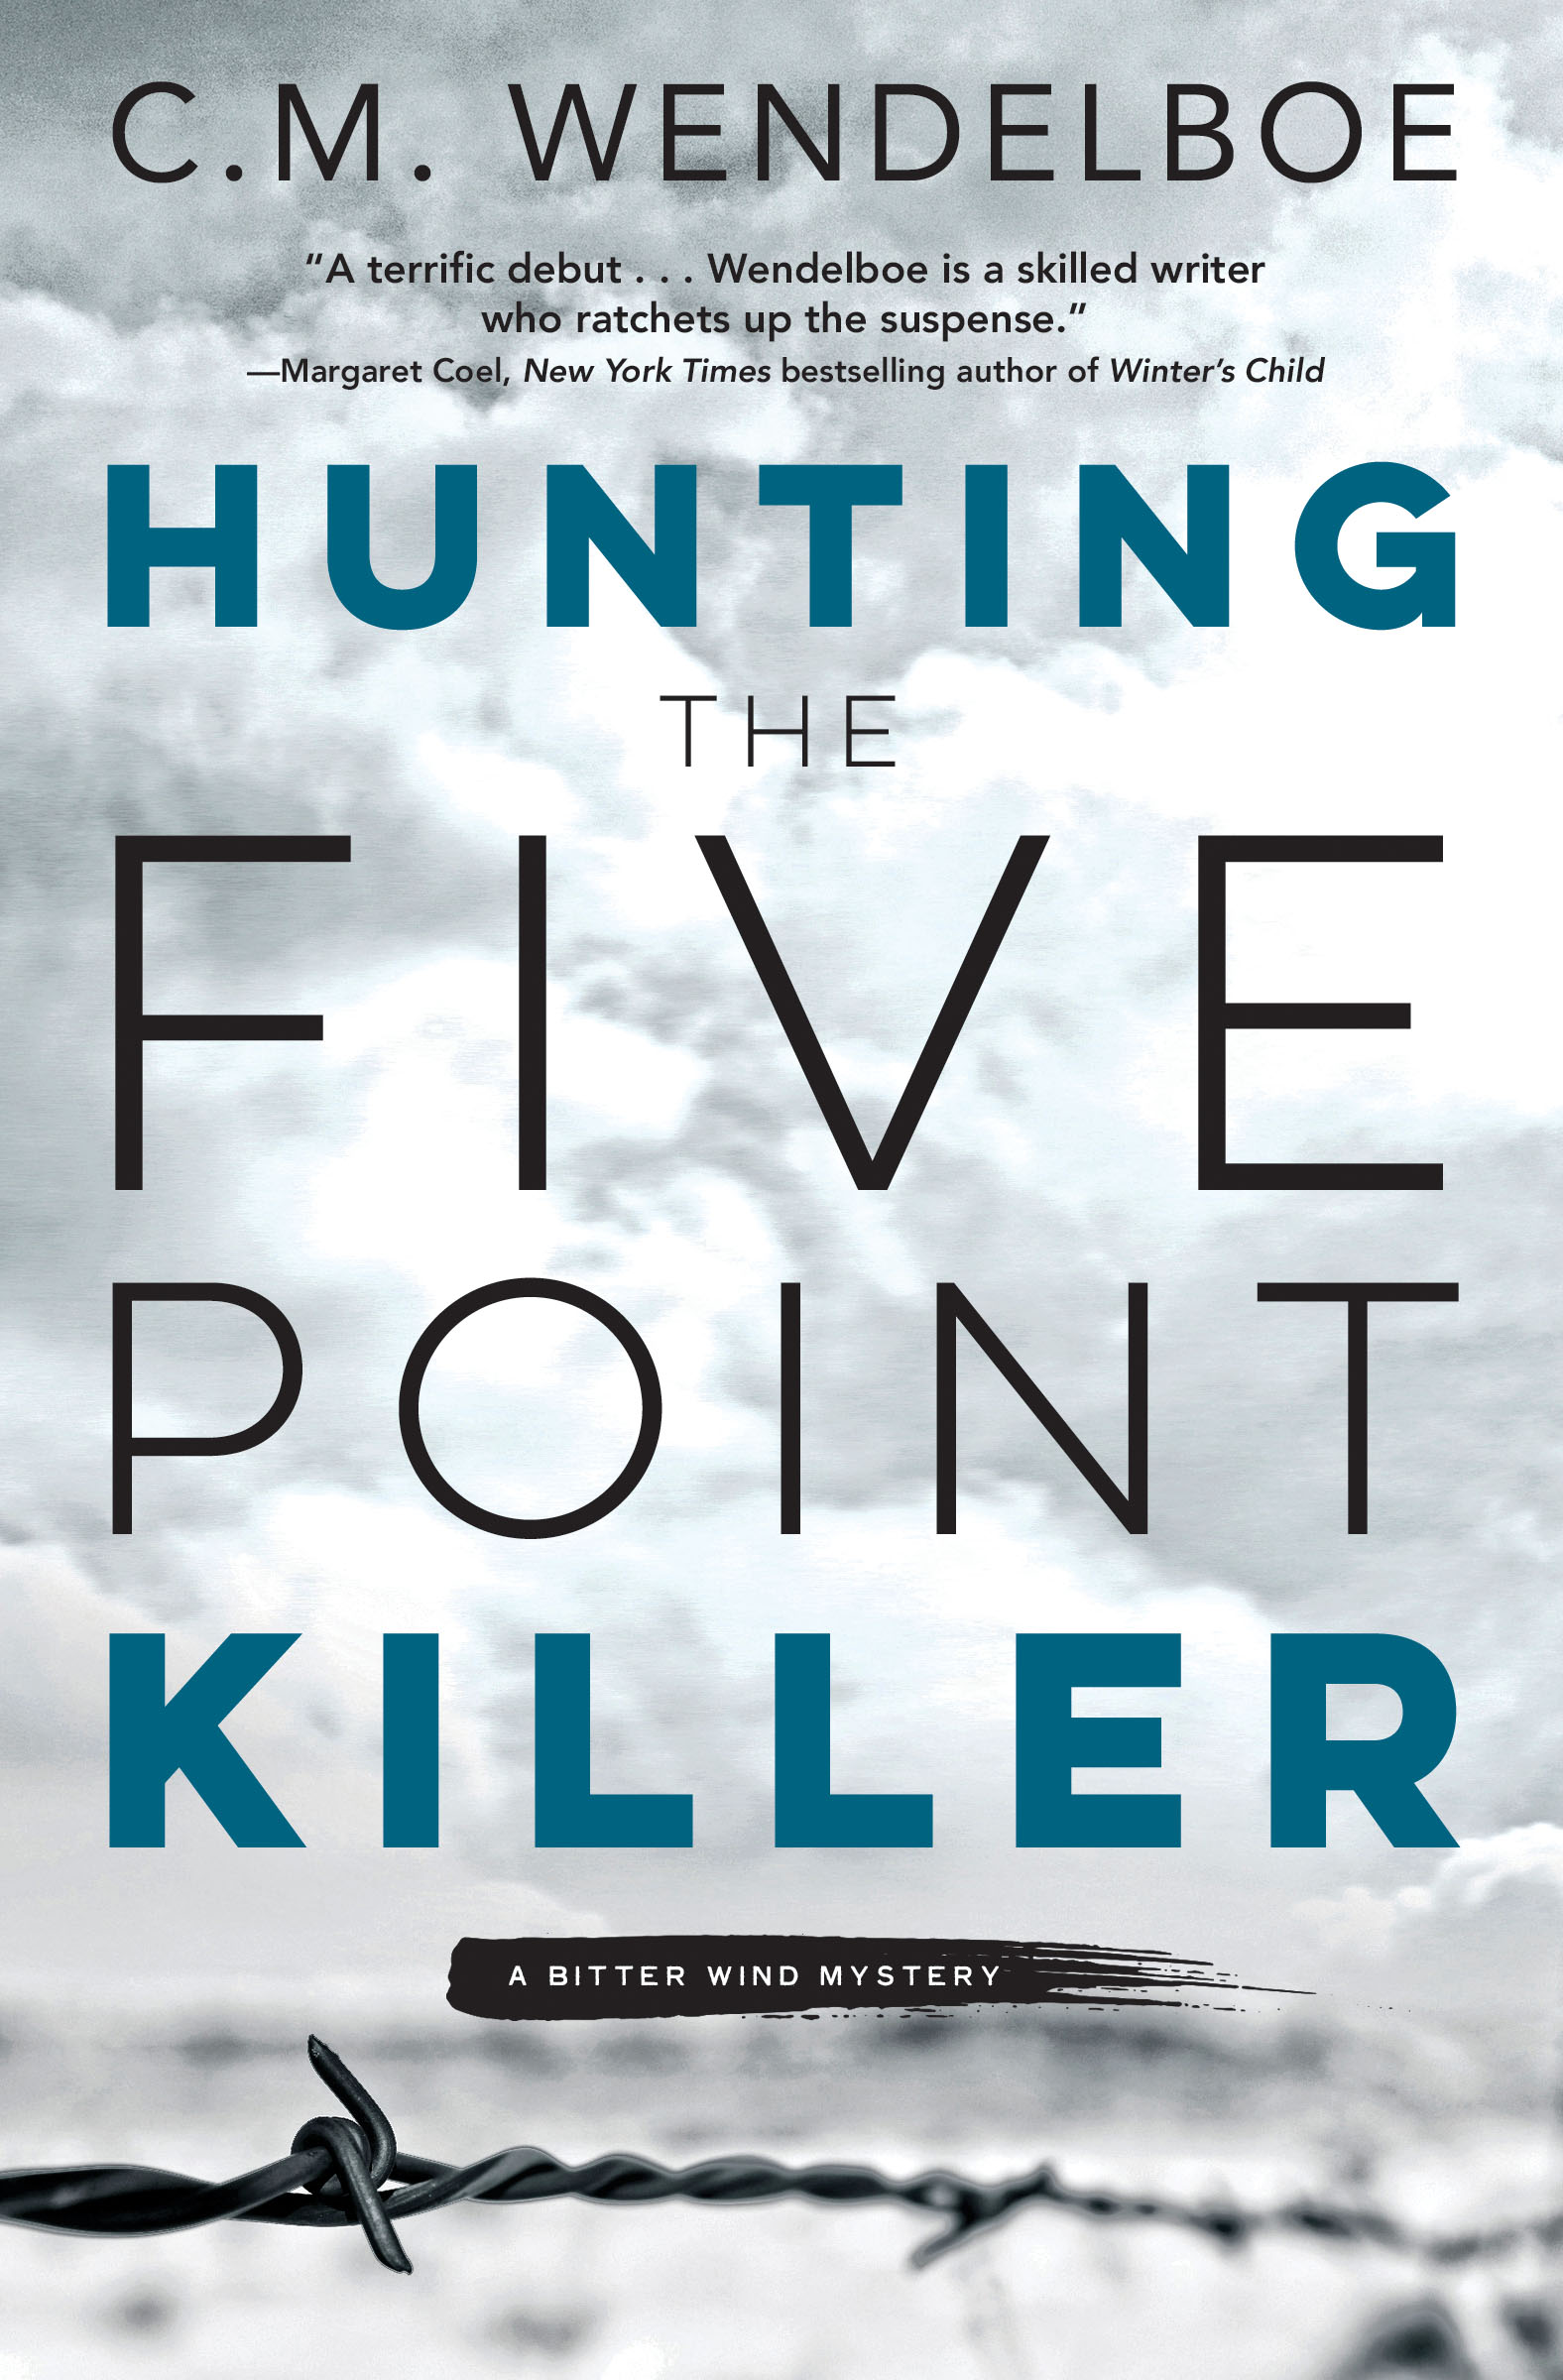 Hunting the Five Point Killer by C. M. Wendelboe (Front Cover)